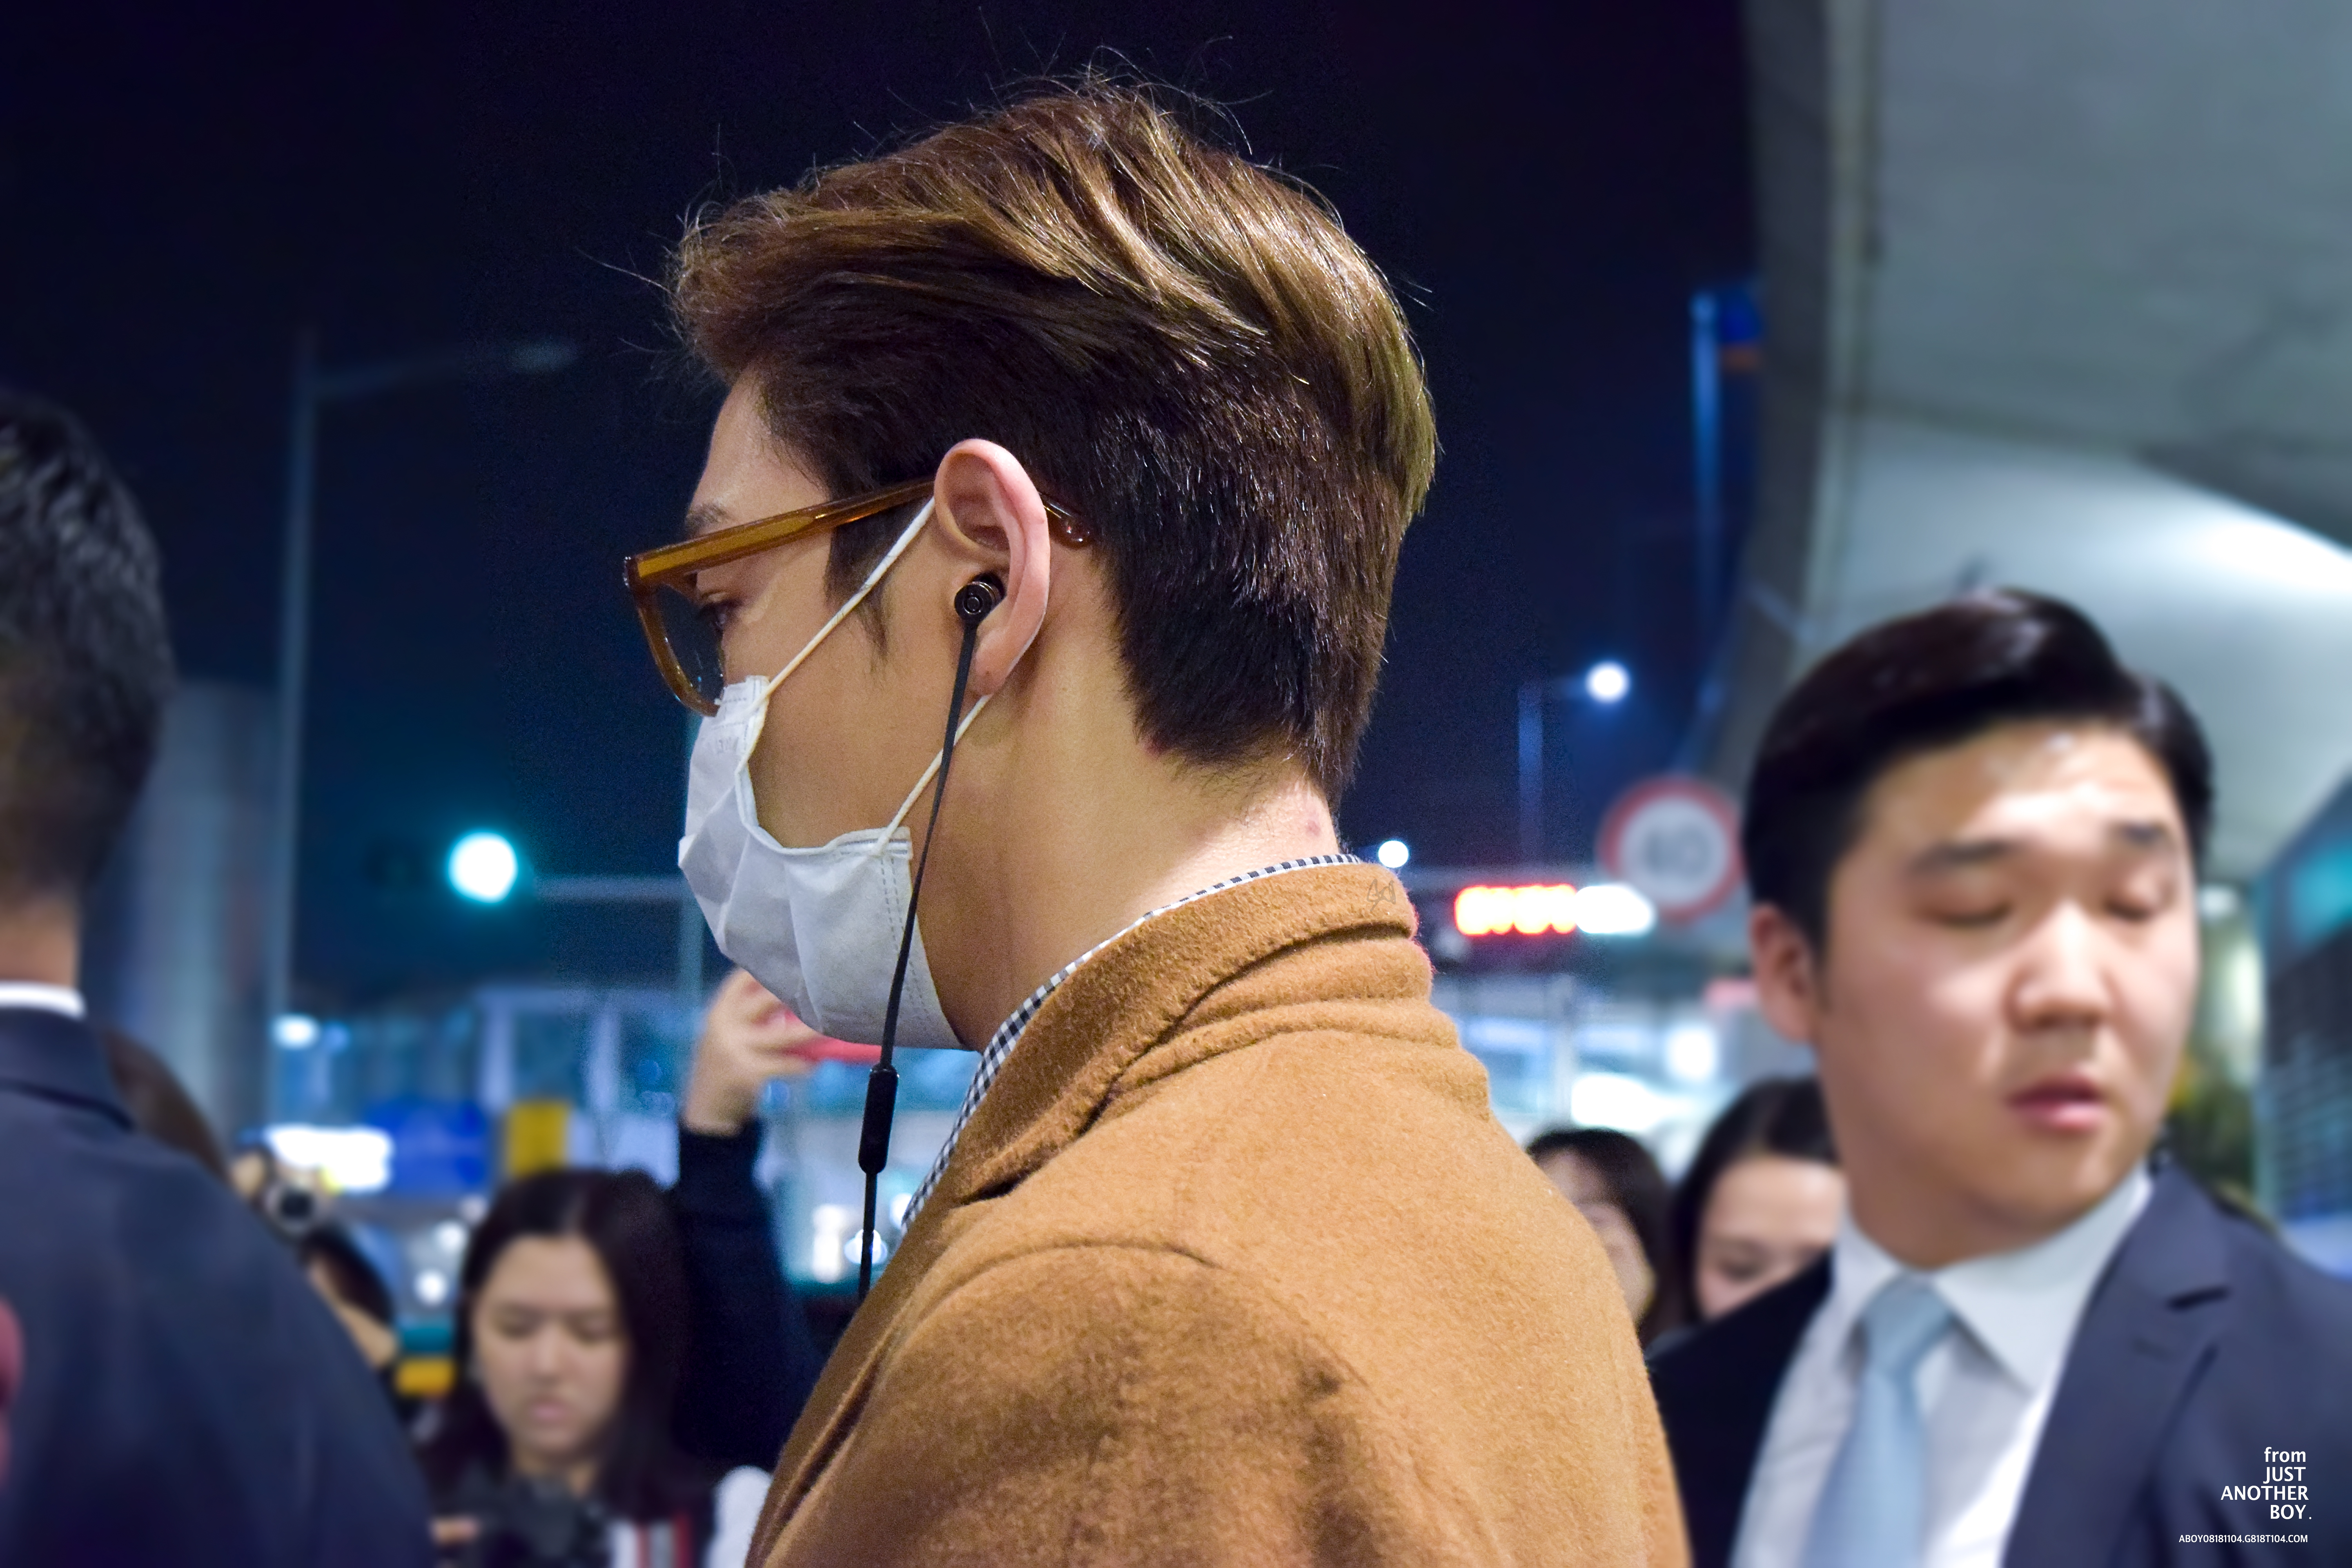 TOP - Incheon Airport - 06nov2015 - justanotherboytg - 03.jpg